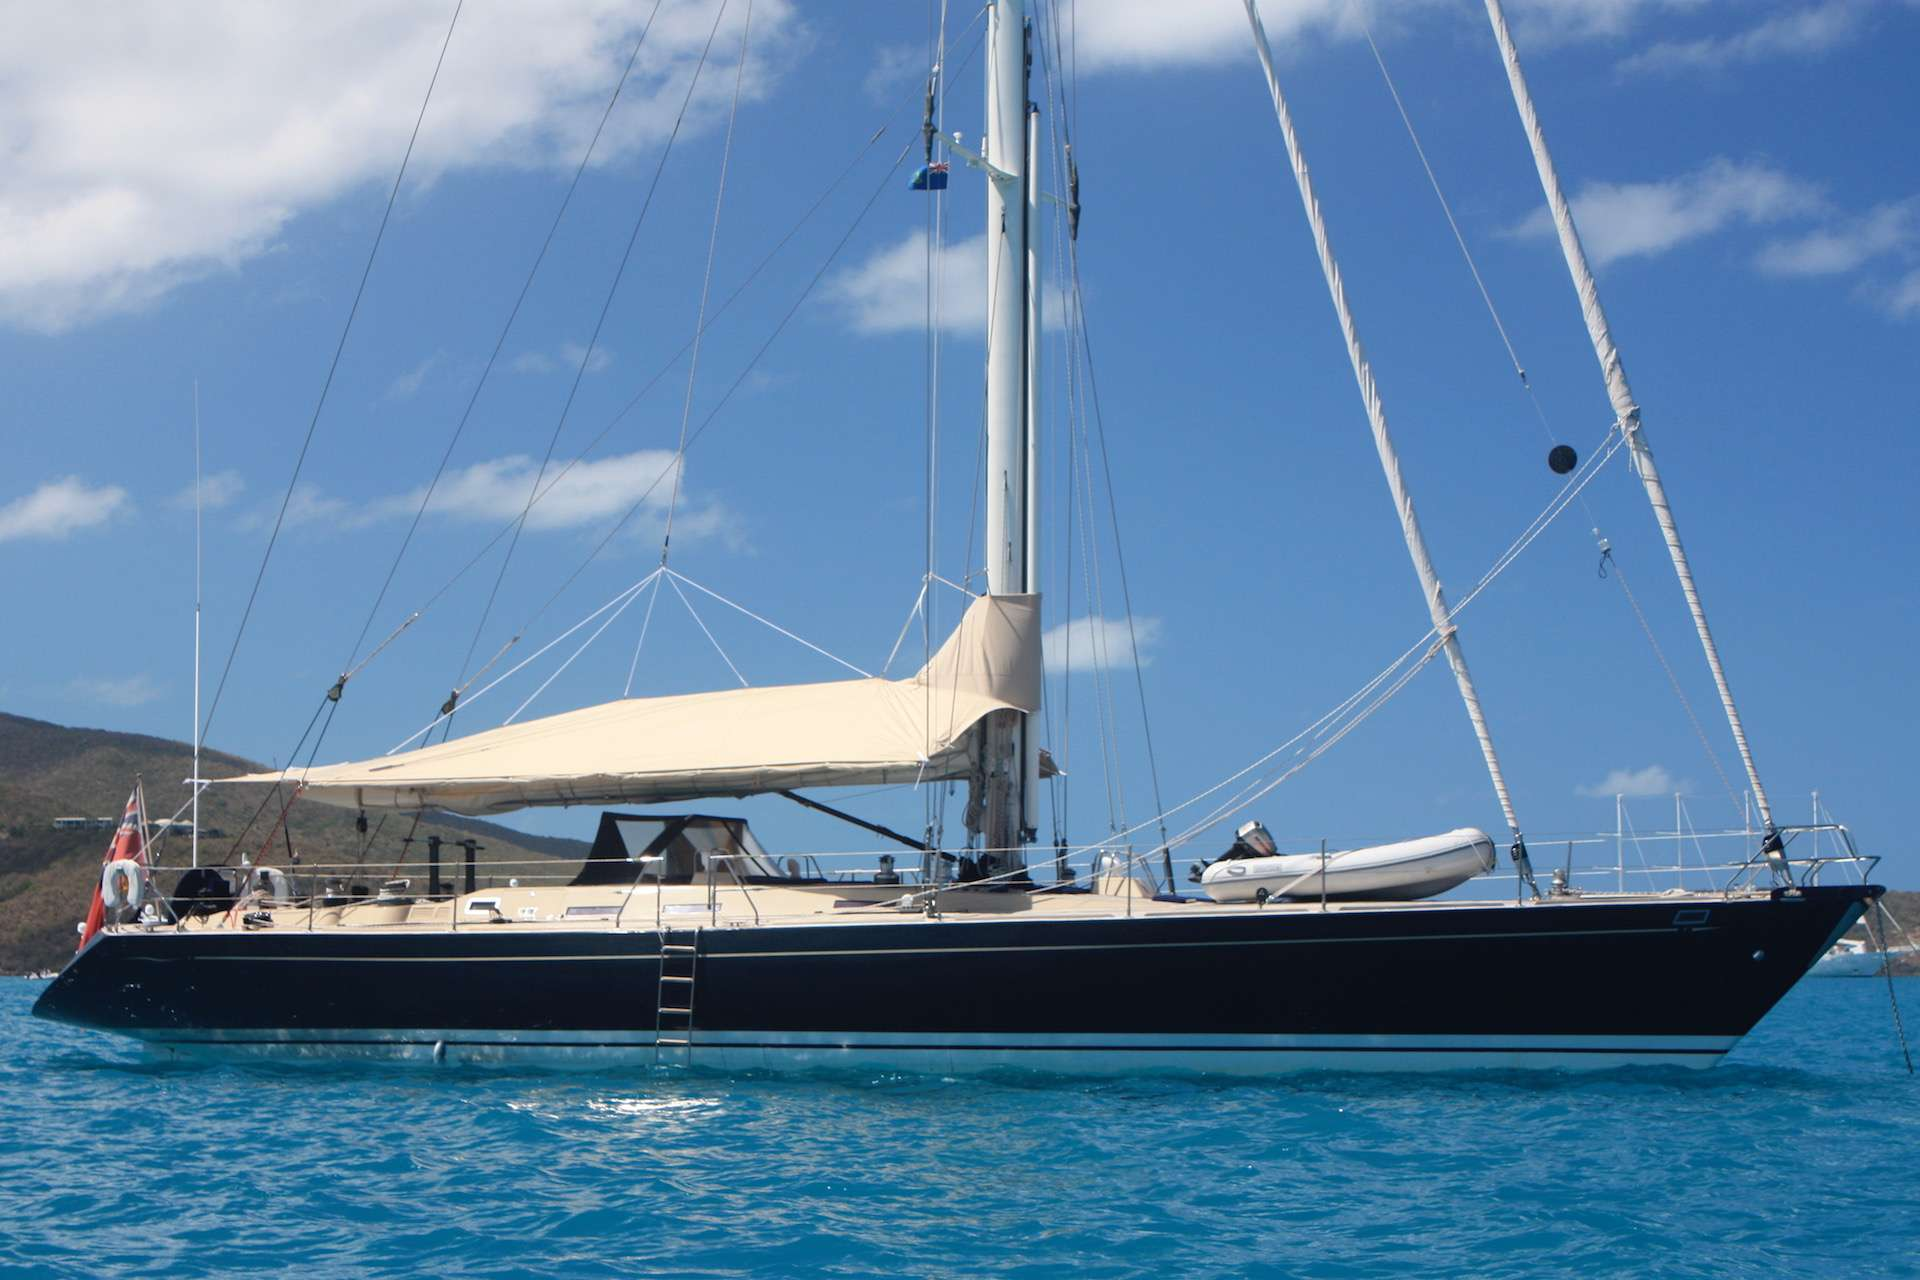 At anchor with Awning BVI